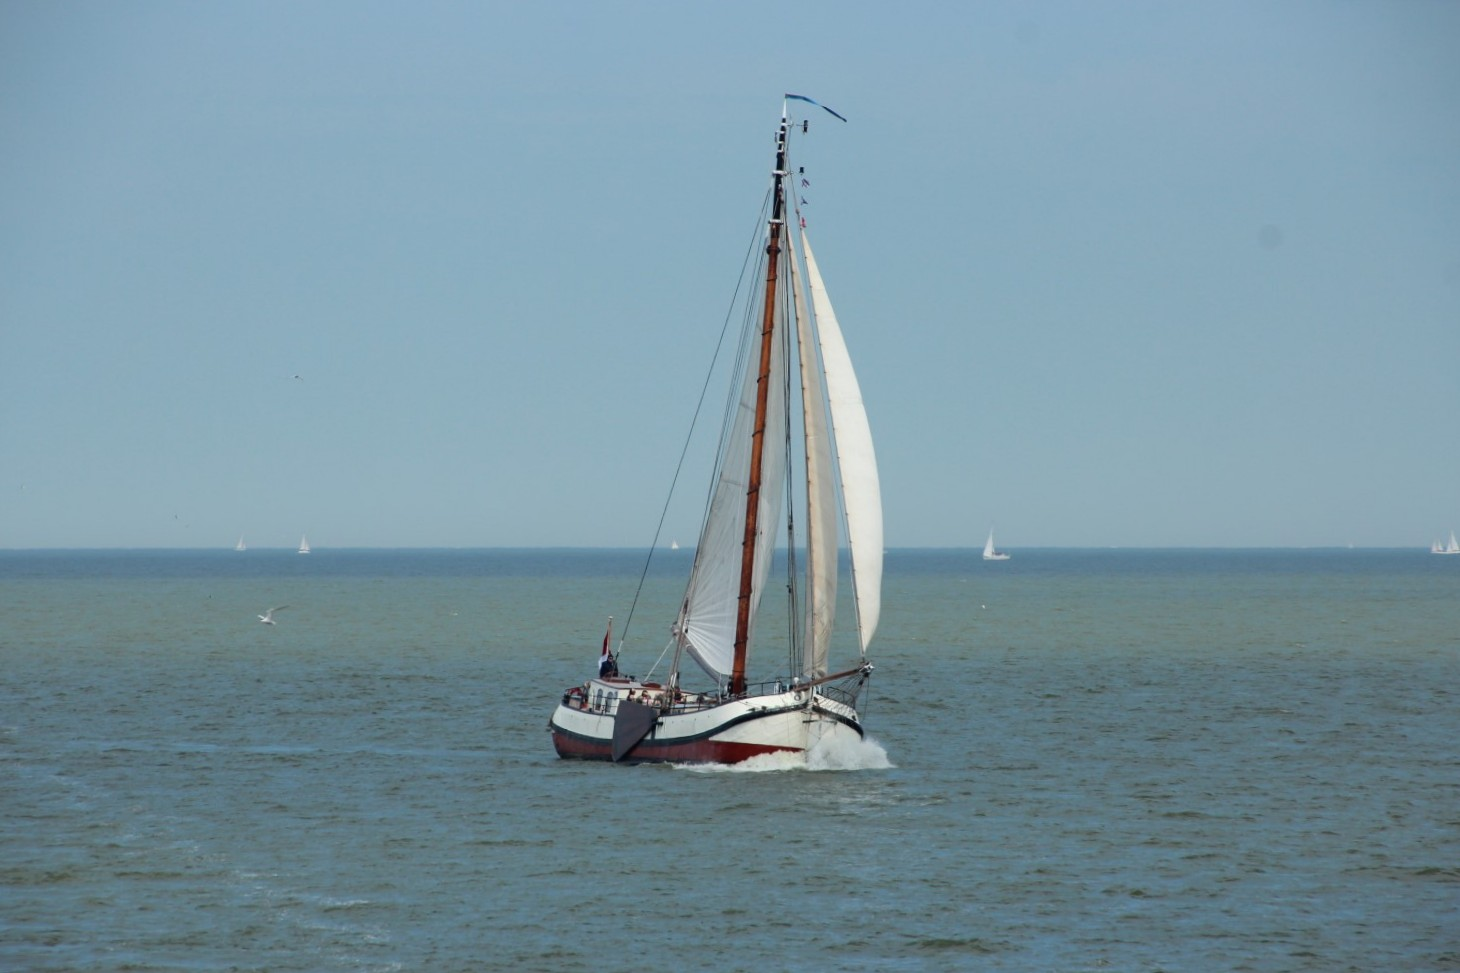 Sailing holiday IJsselmeer the Netherlands